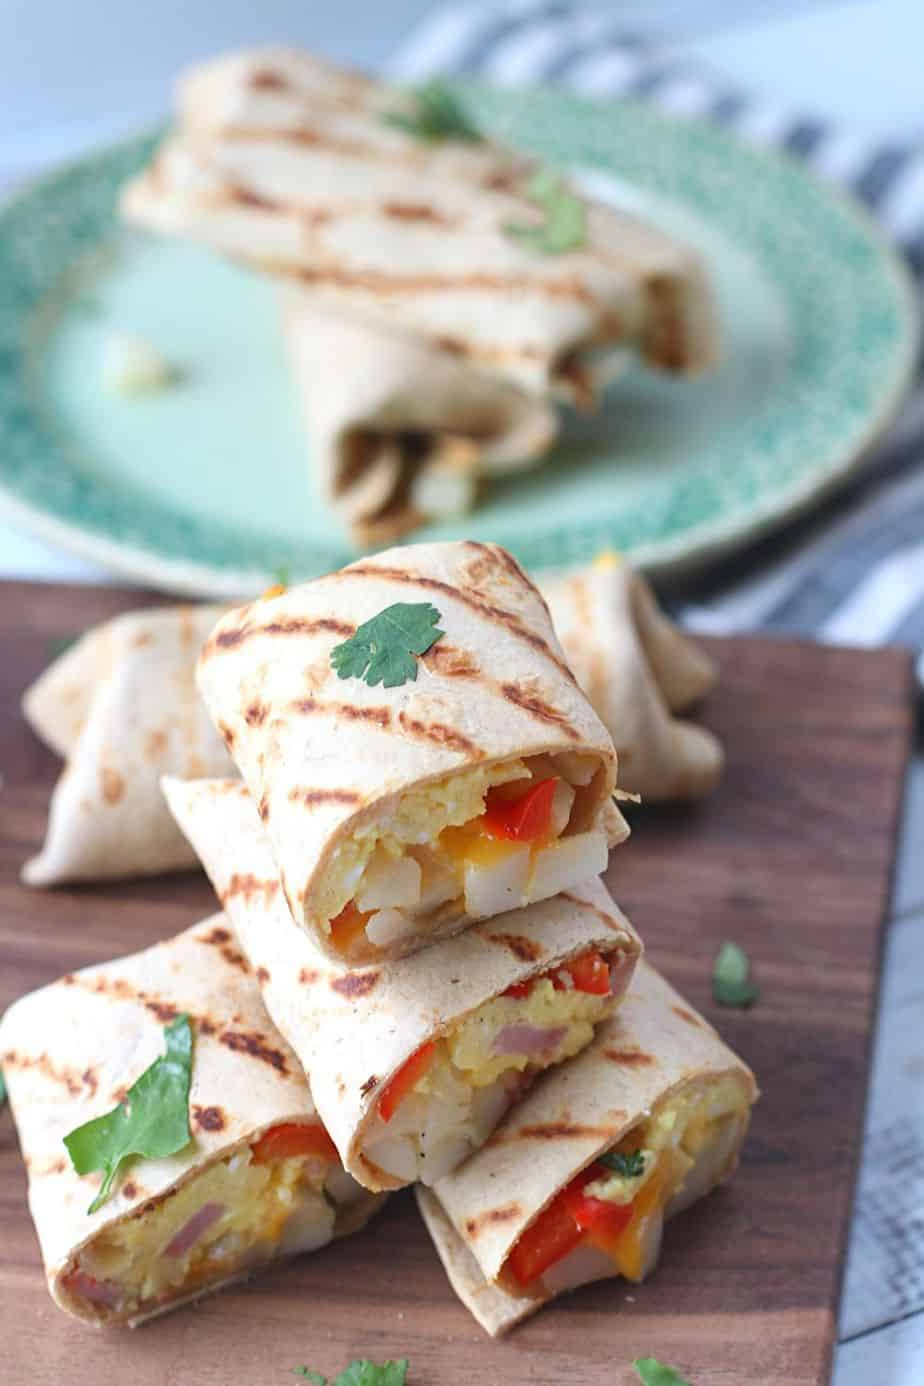 These Tasty Loaded Breakfast Burritos are a delicious make-ahead freezer meal your family will love. The Mission®Protein Tortilla Wraps add a delicious protein boost.#ad #MissionFoods #MissionProteinTortillas